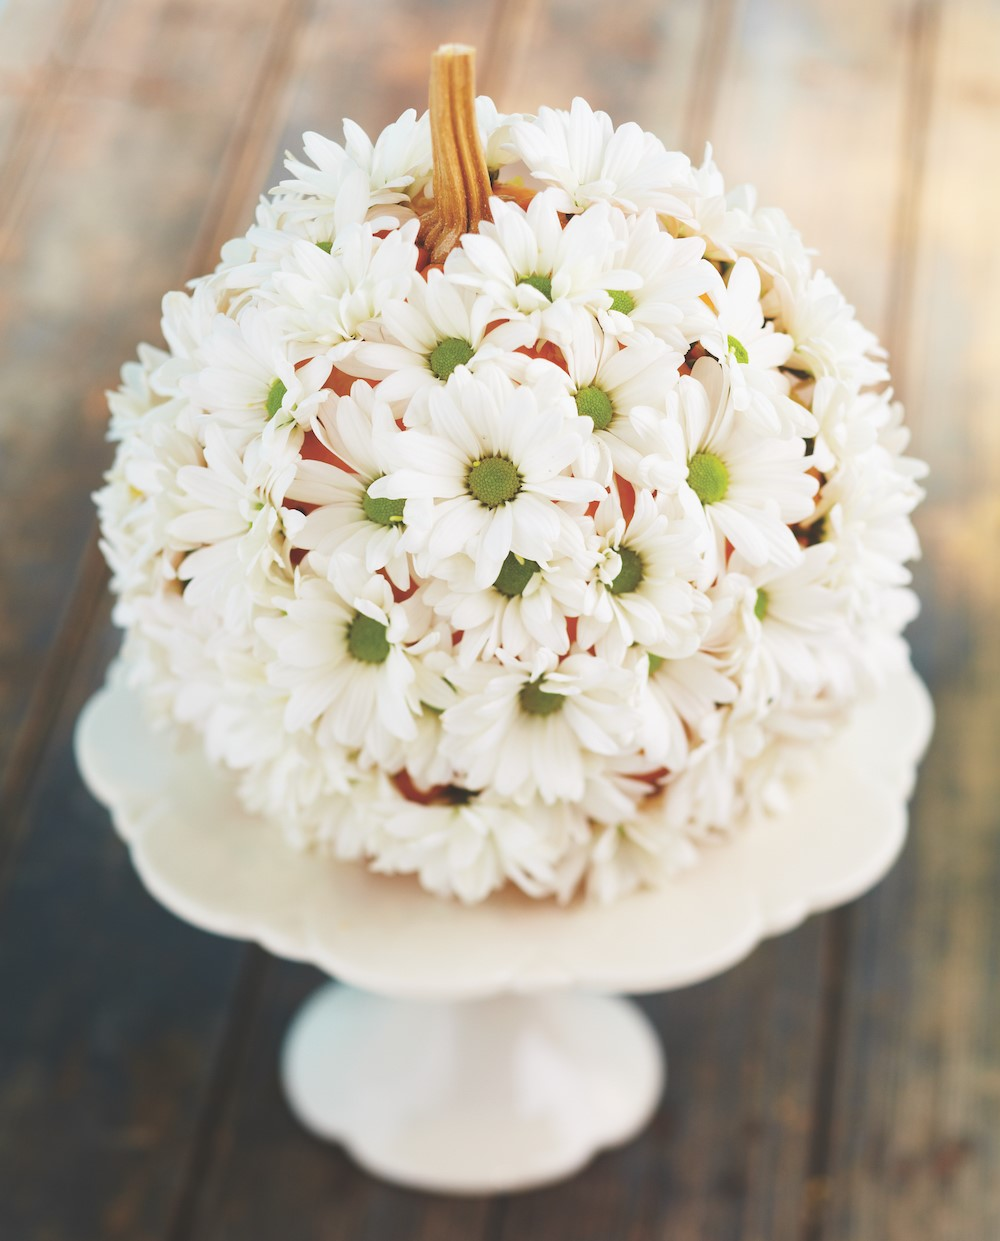 White mums placed over pumpkin on a white cake stand